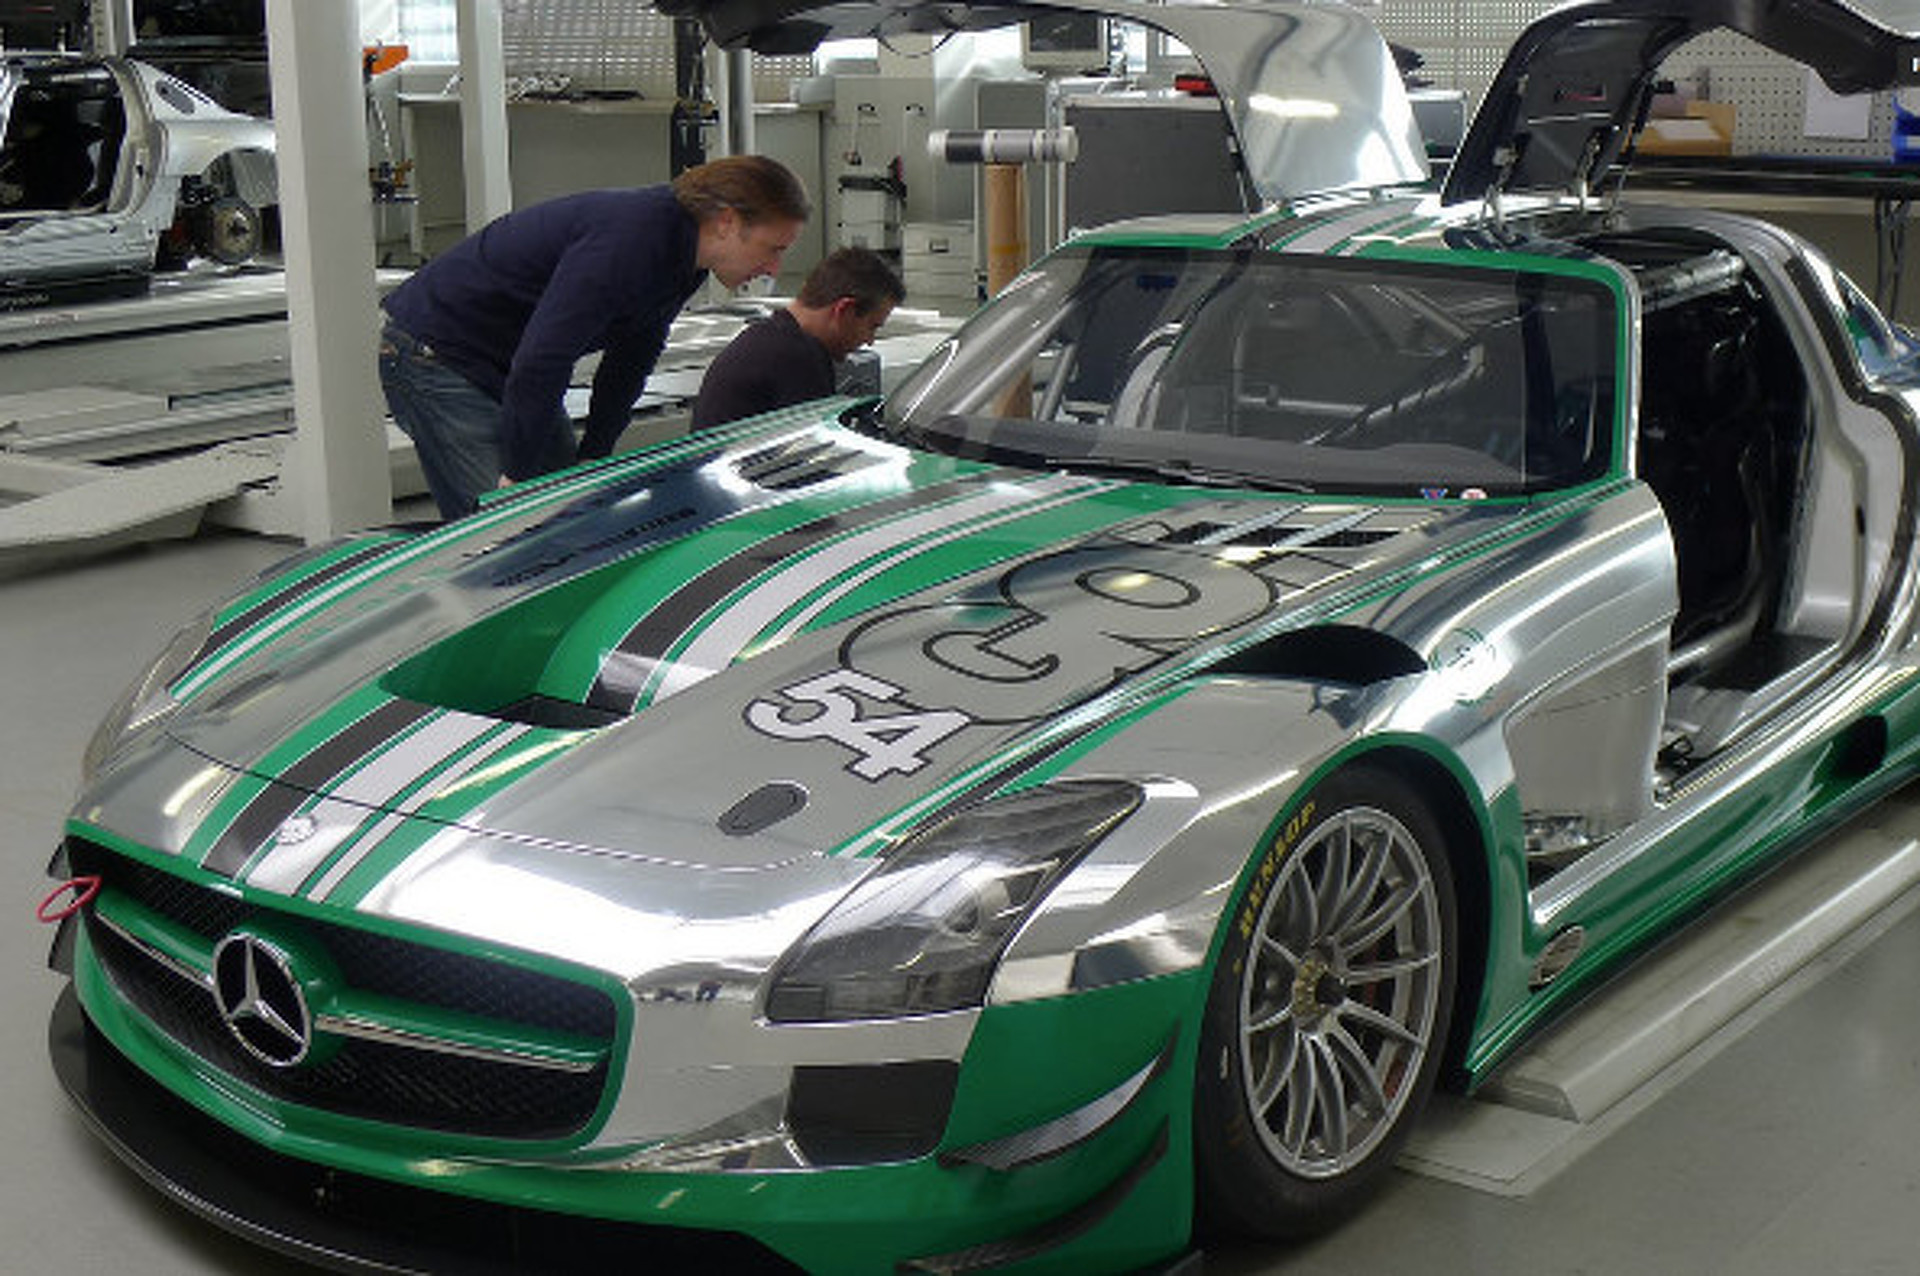 Black Swan Racing Set to Field a SLS AMG GT3